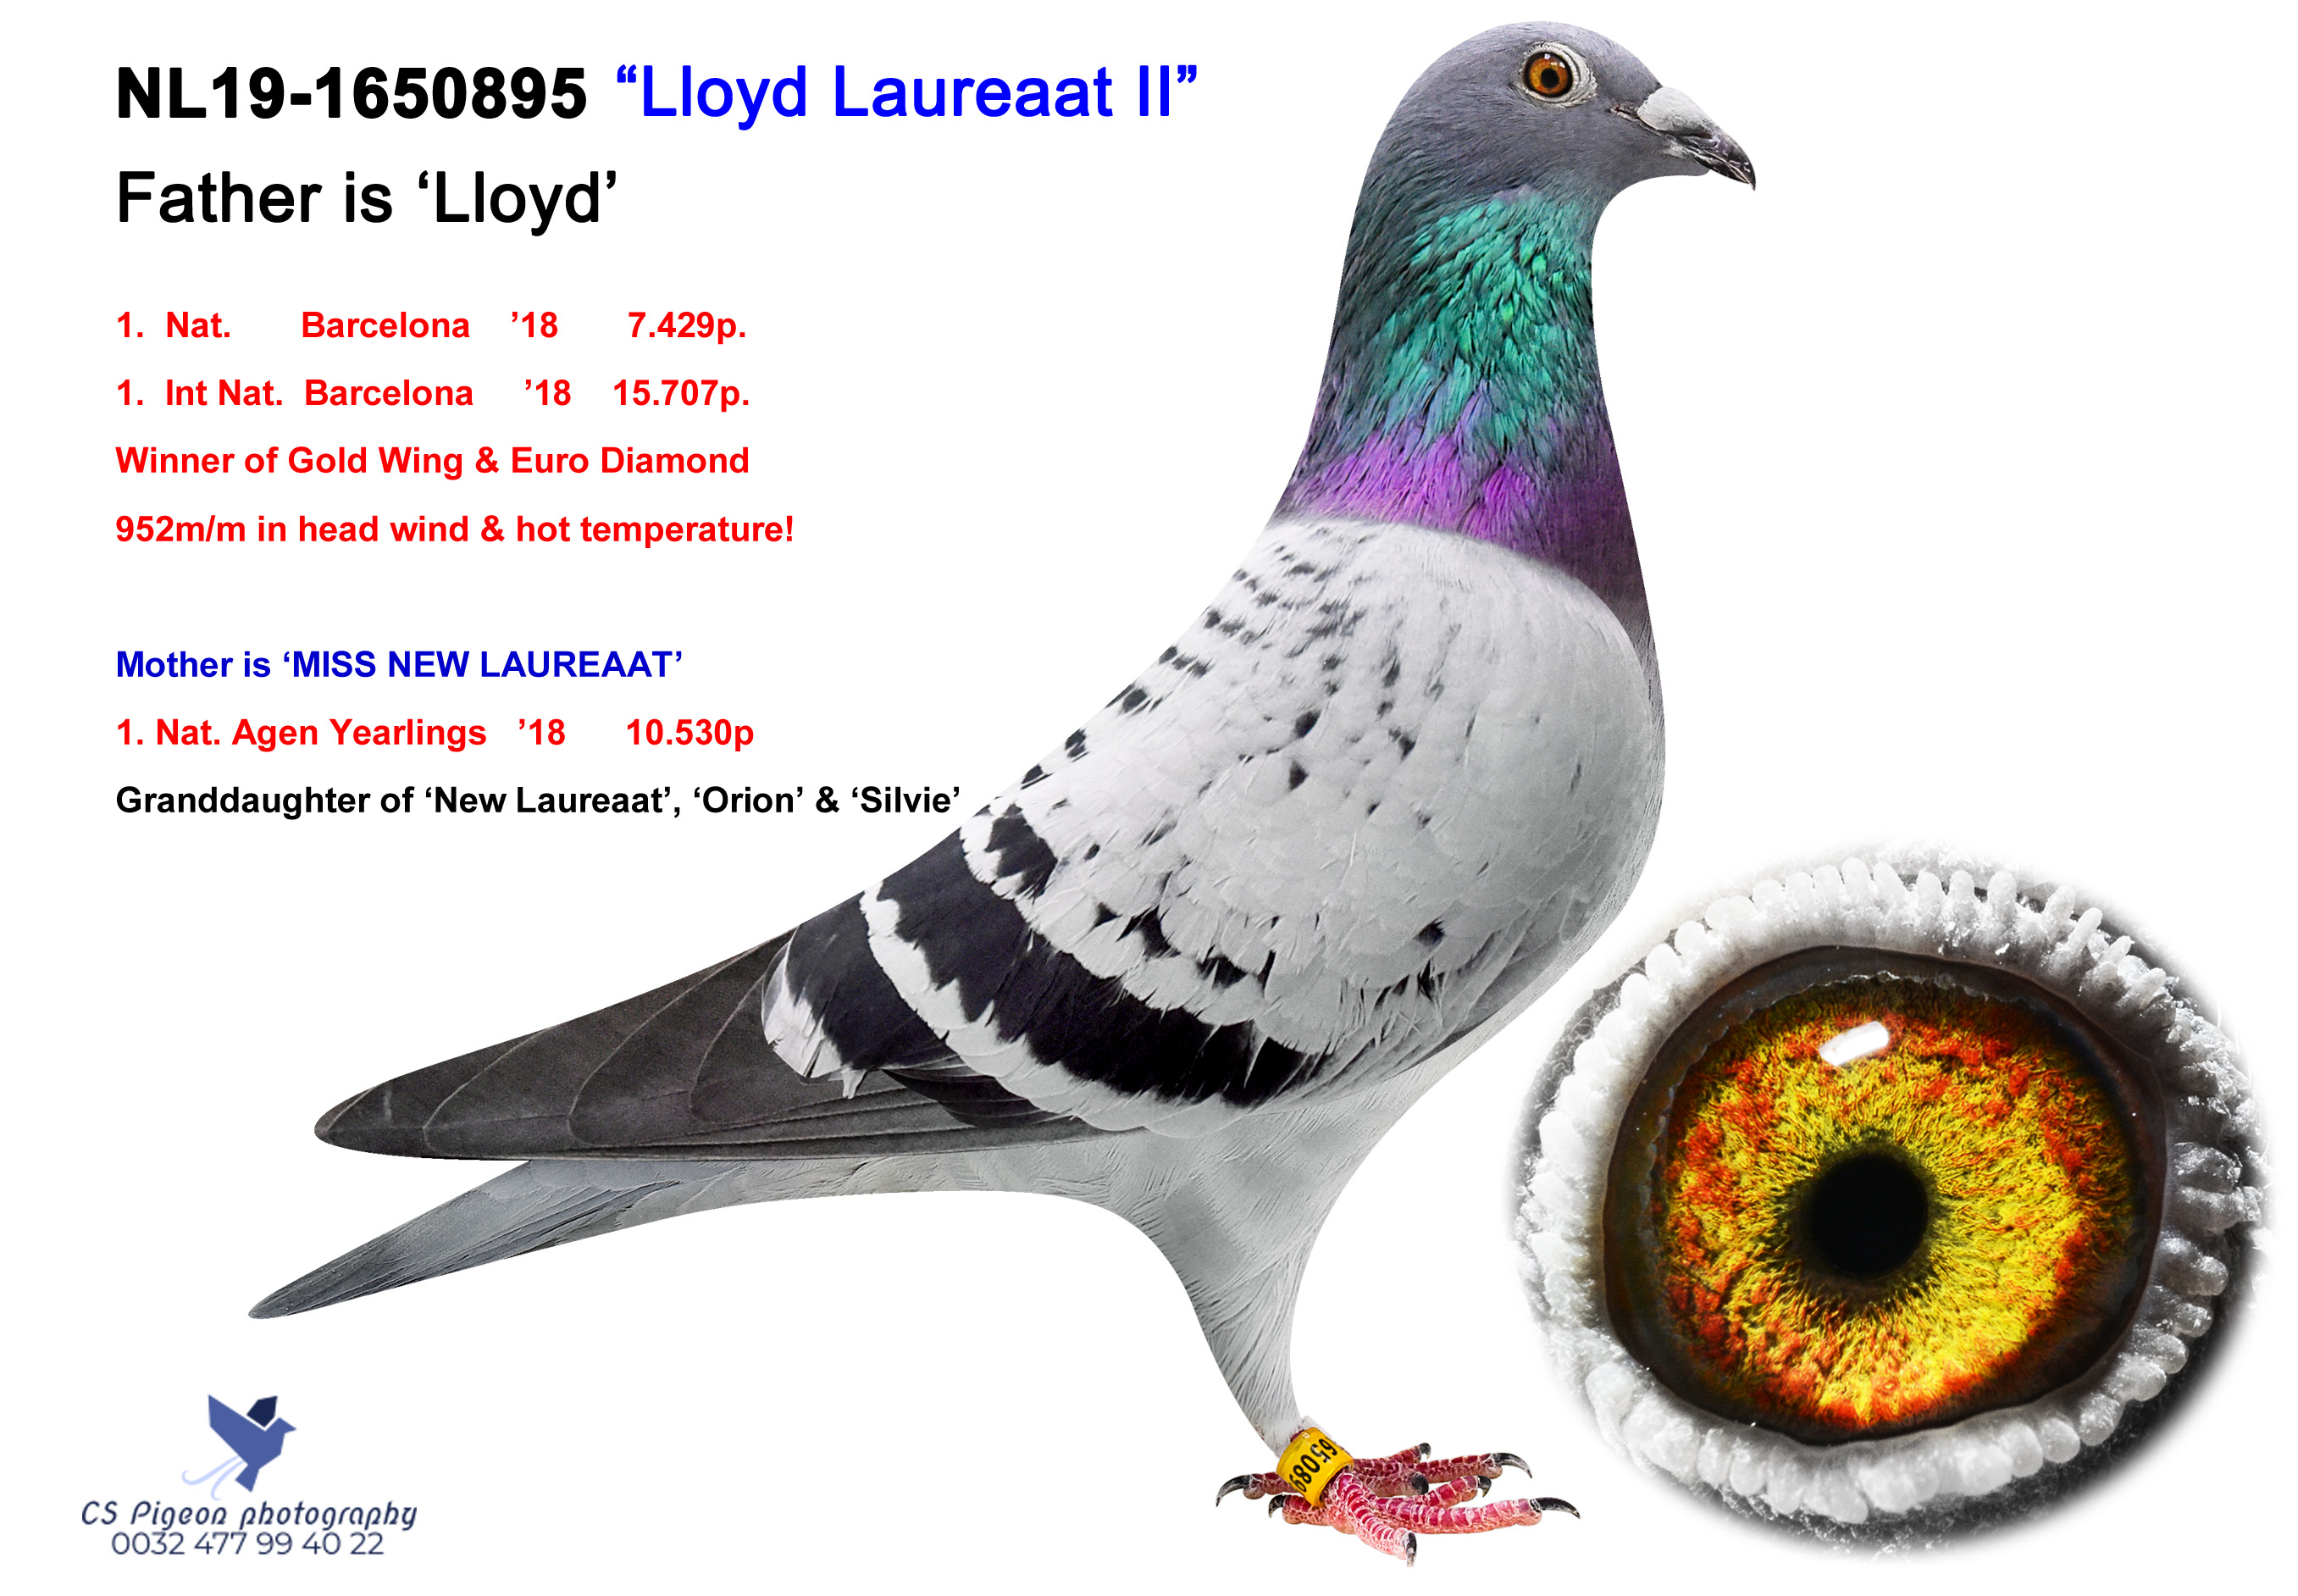 Lloyd Laureaat II